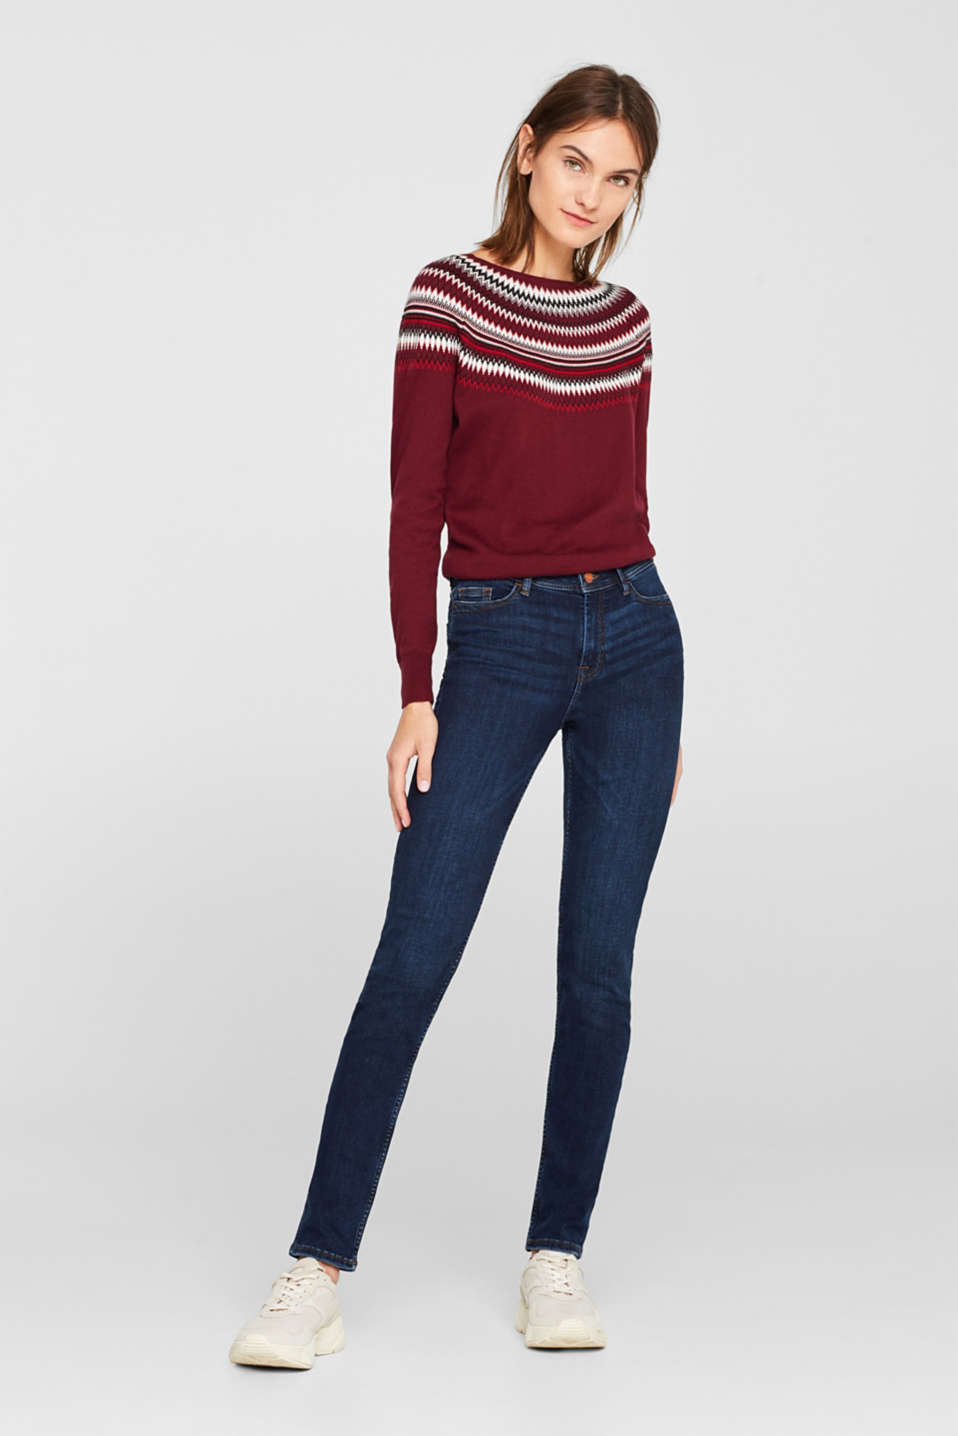 Esprit - Soft stretch jeans with a thermal inner surface